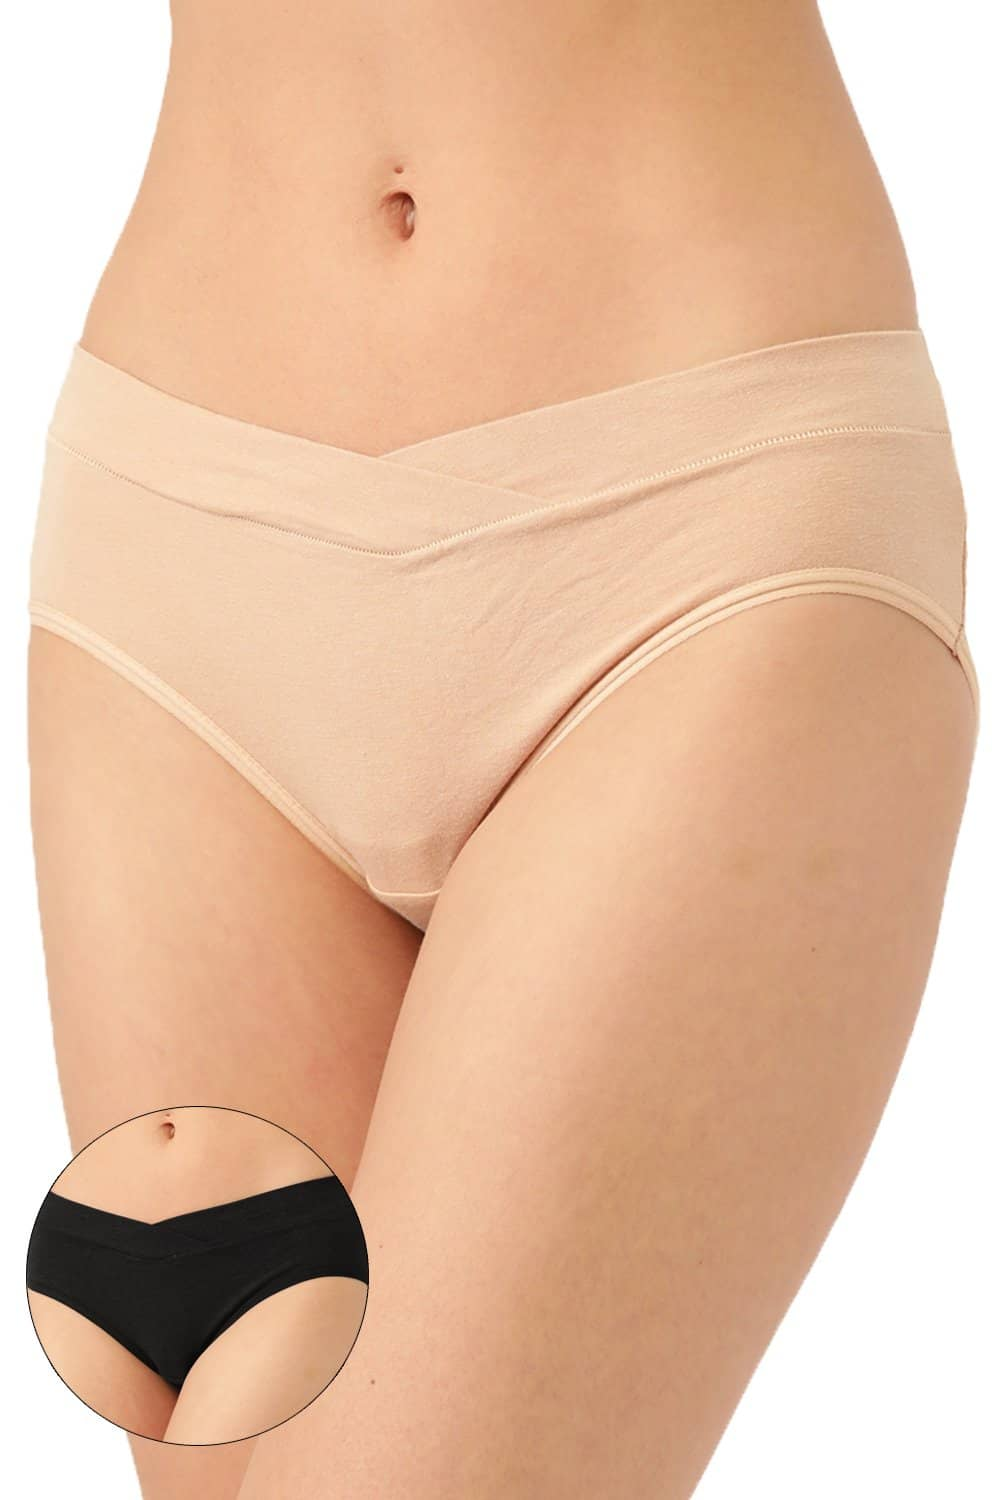 Inner Sense Organic Cotton Antimicrobial Maternity Panty - Pack of 2